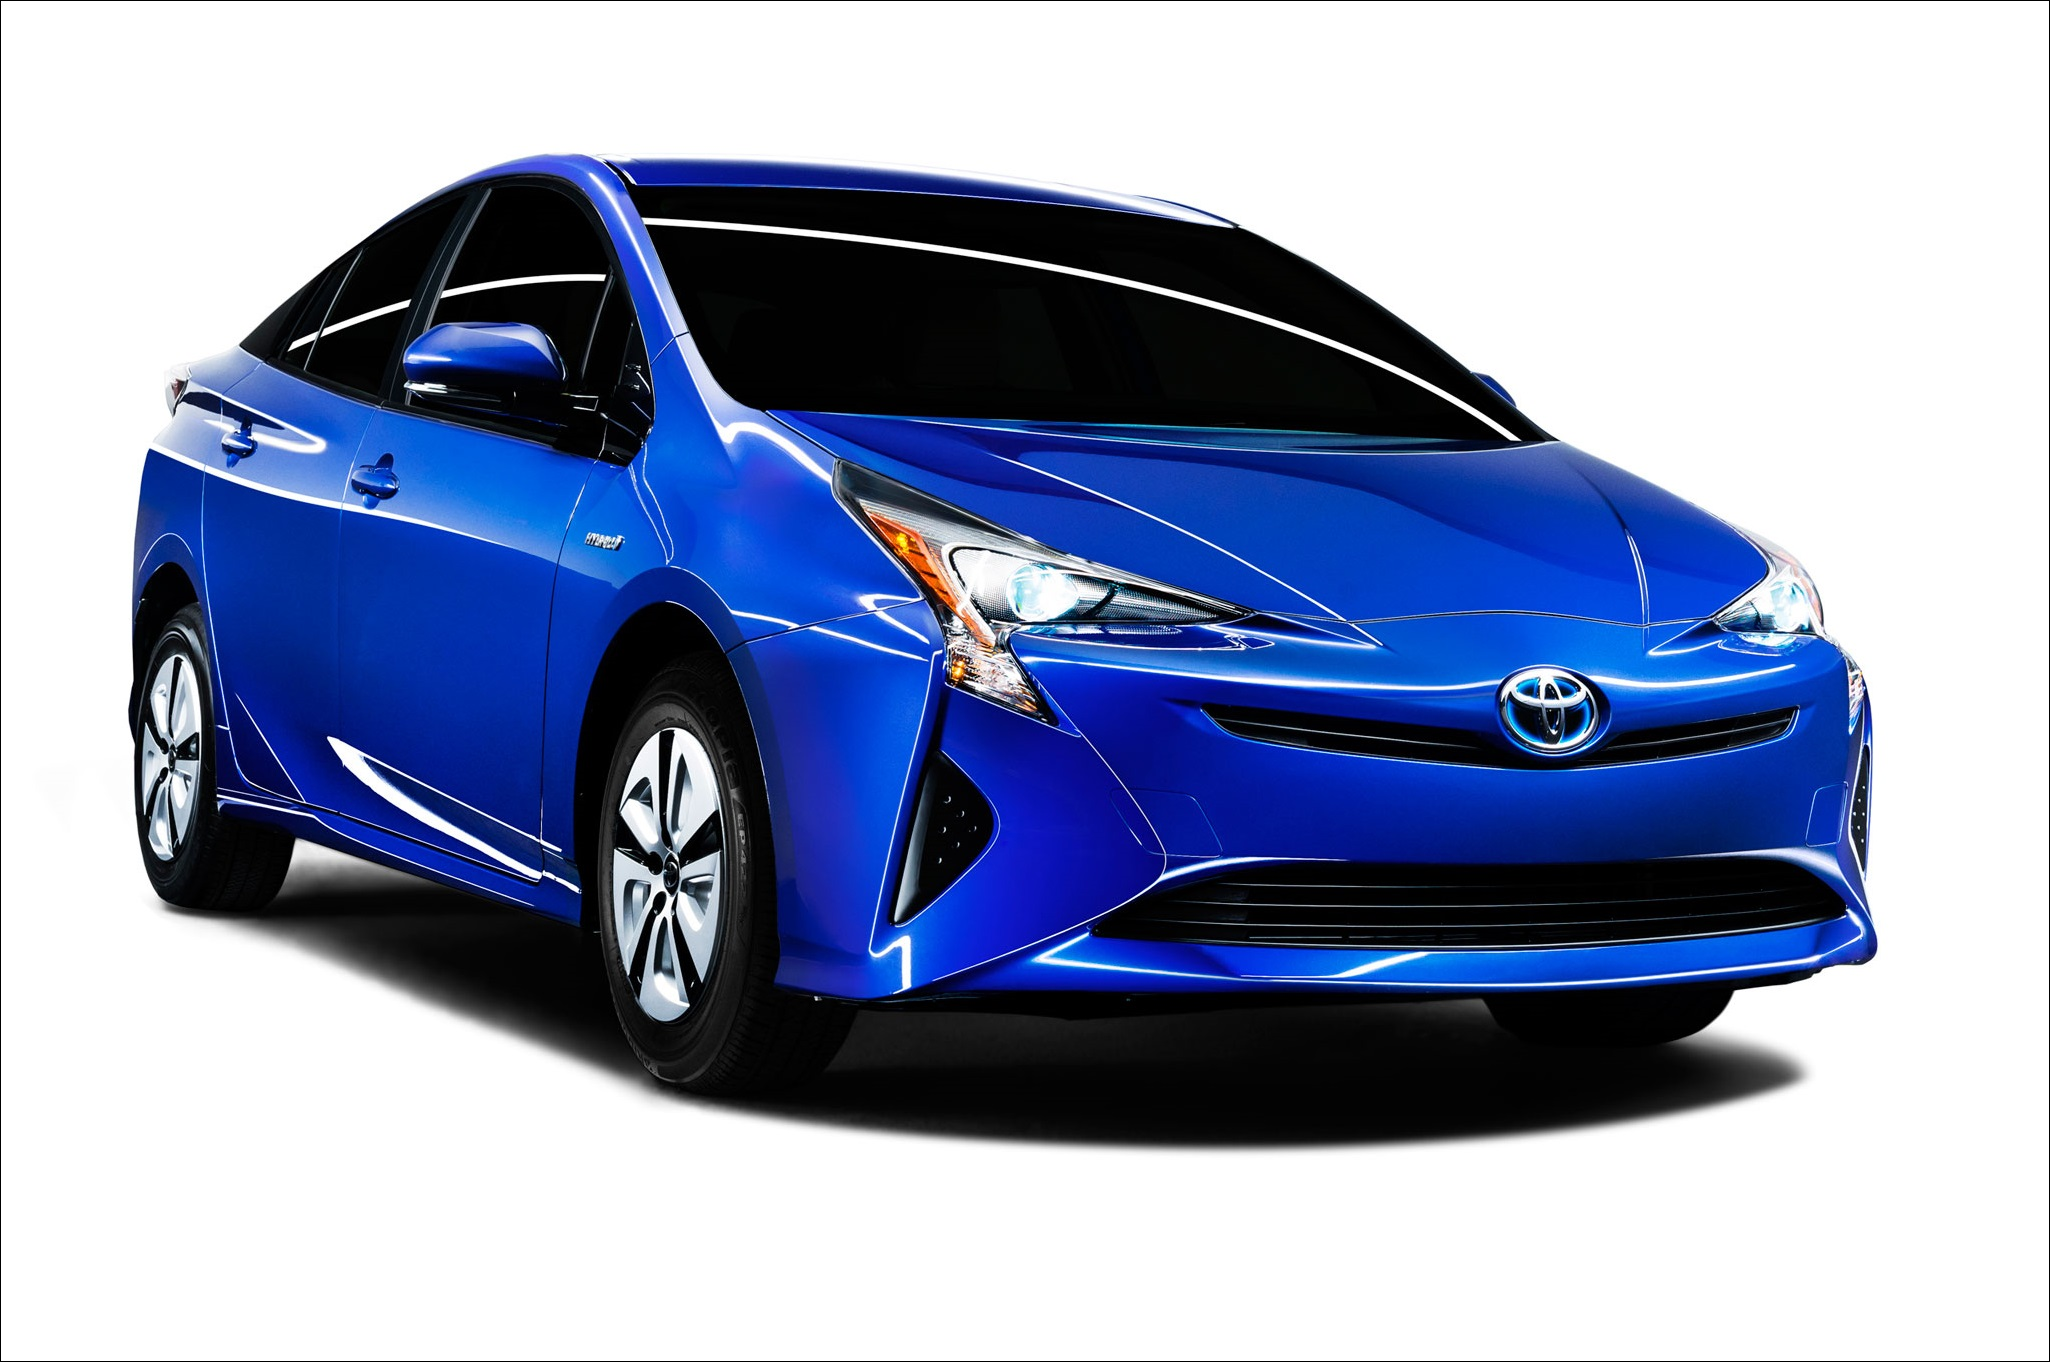 2016-toyota-prius-eco-front-side-view